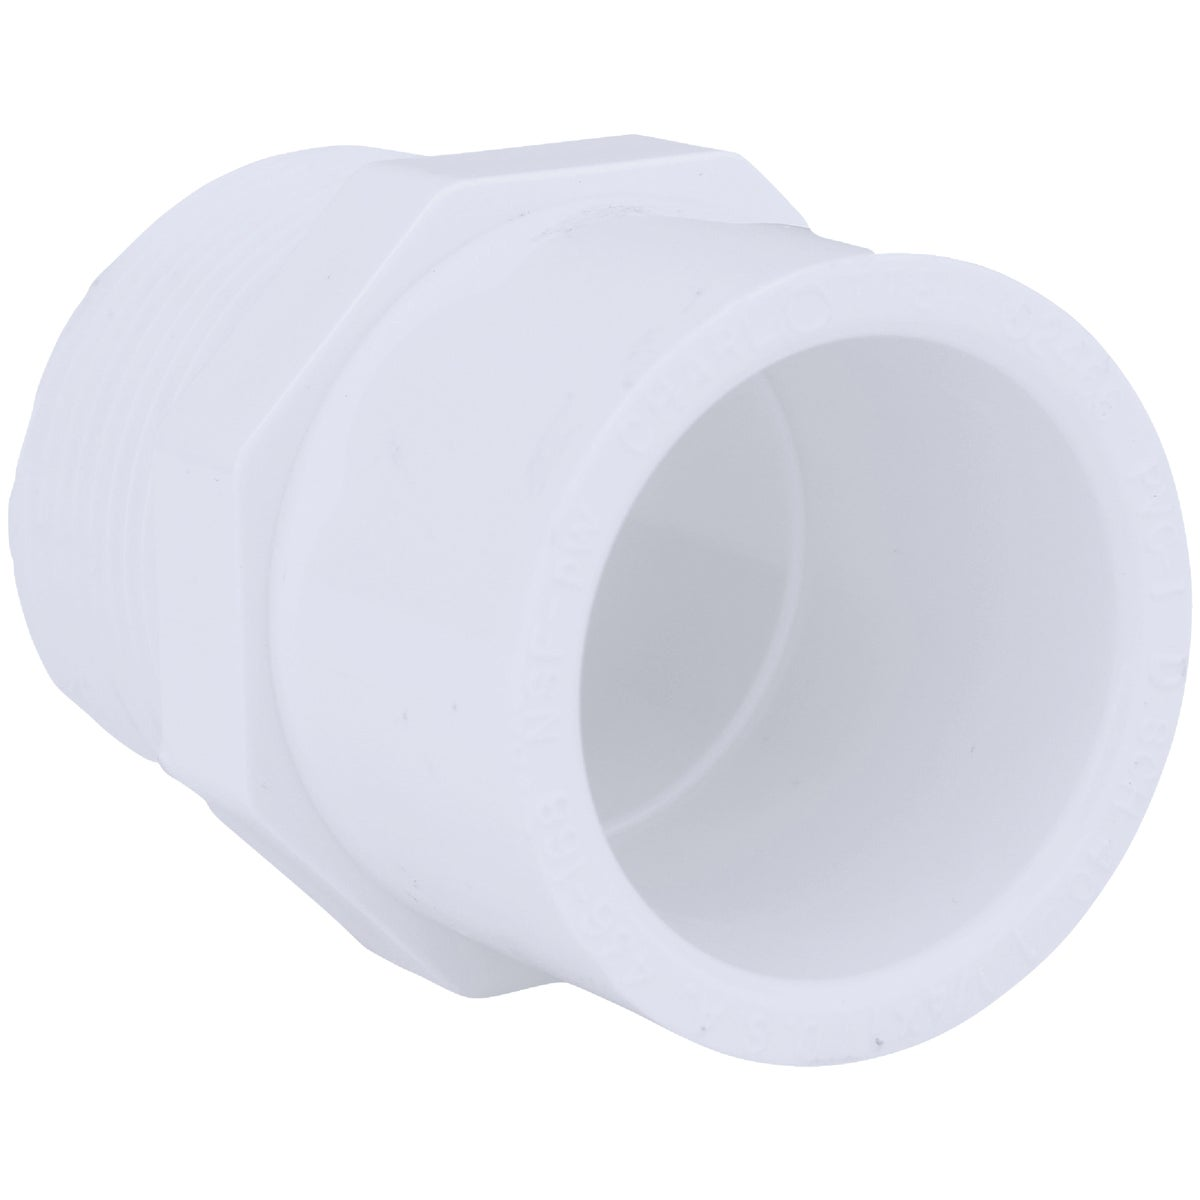 Male Adapter Pressure Fitting